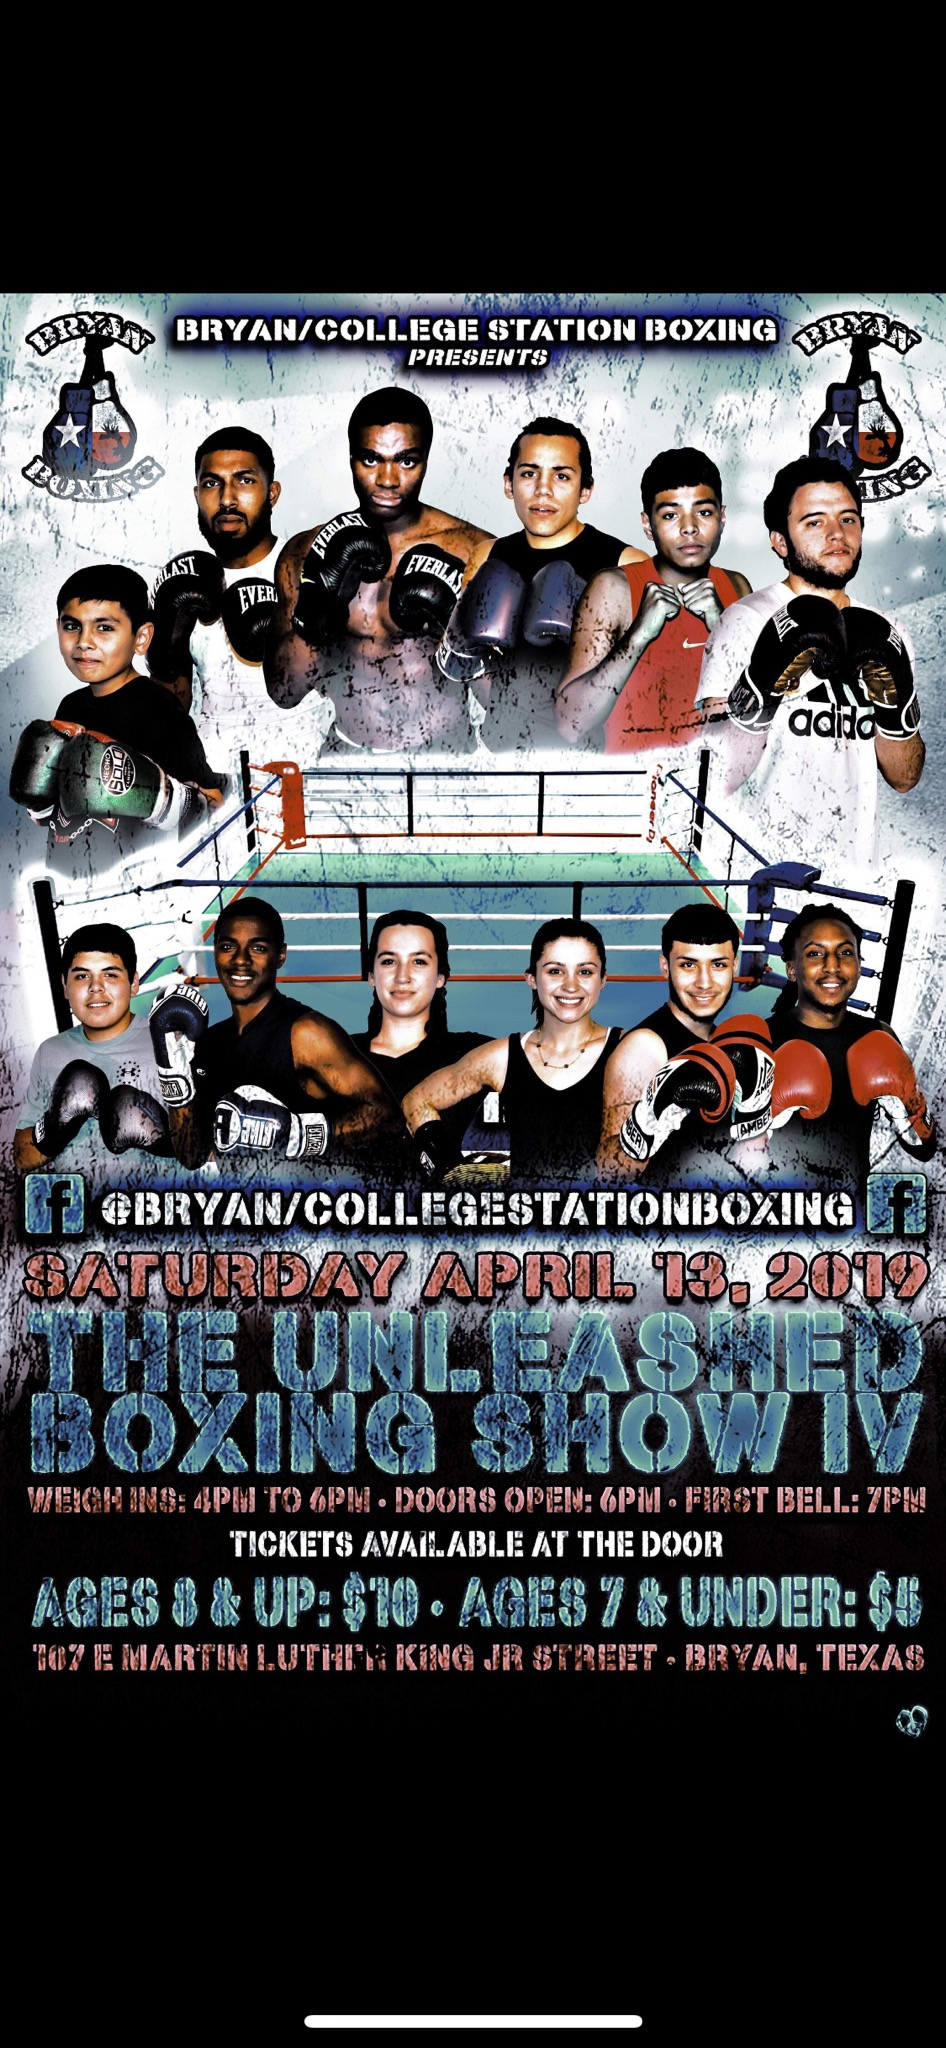 2019 The Unleashed Boxing Show IV